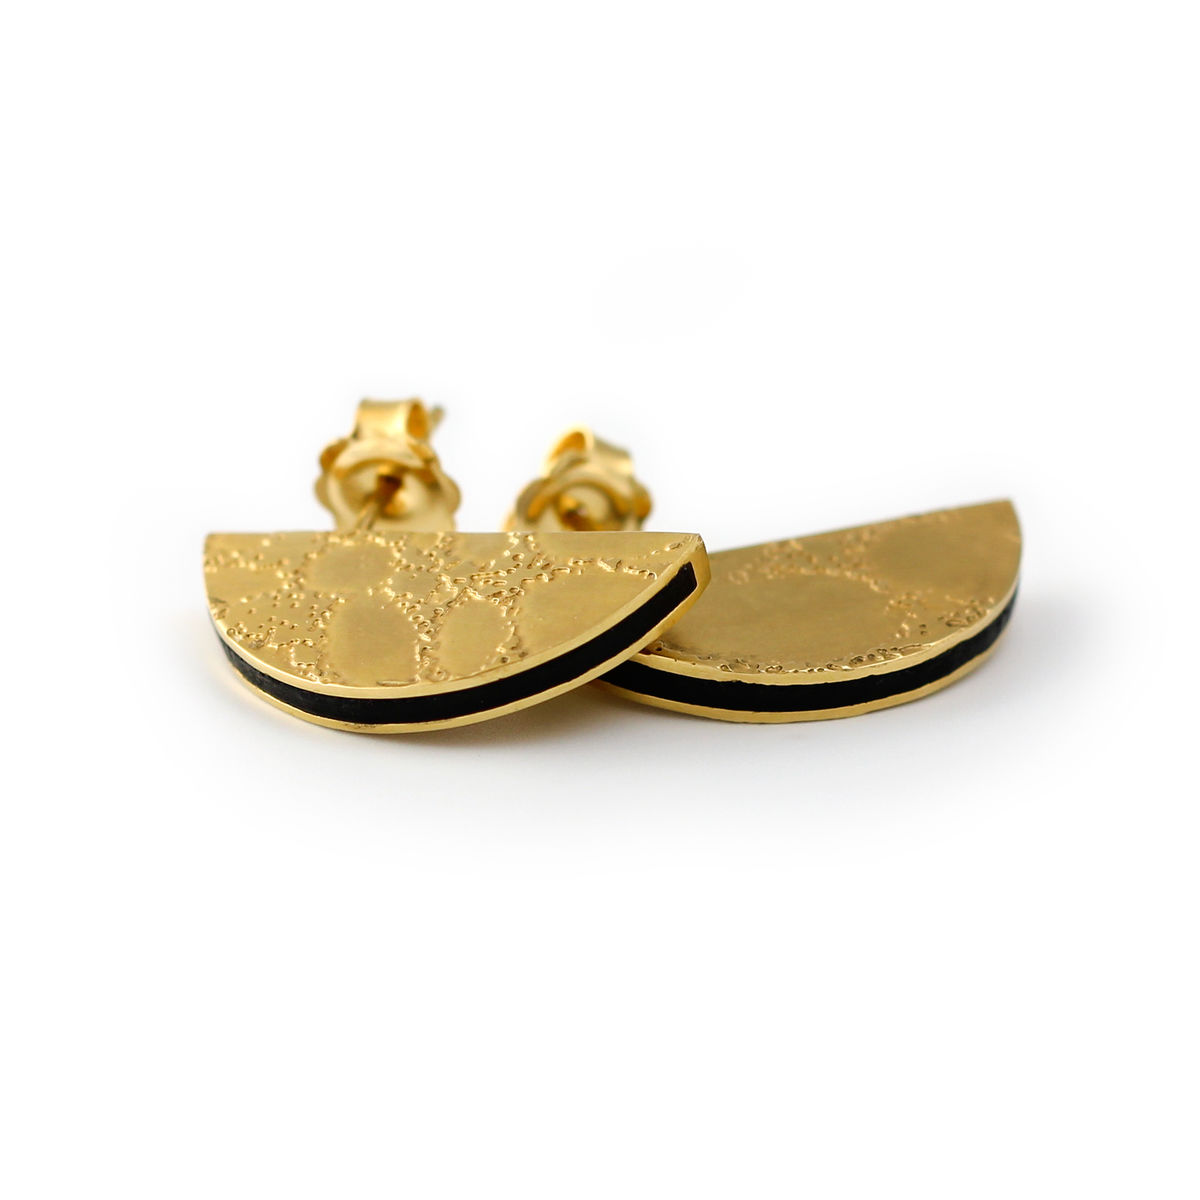 SKIN textured semicircle stud earrings - gold & black - product images  of